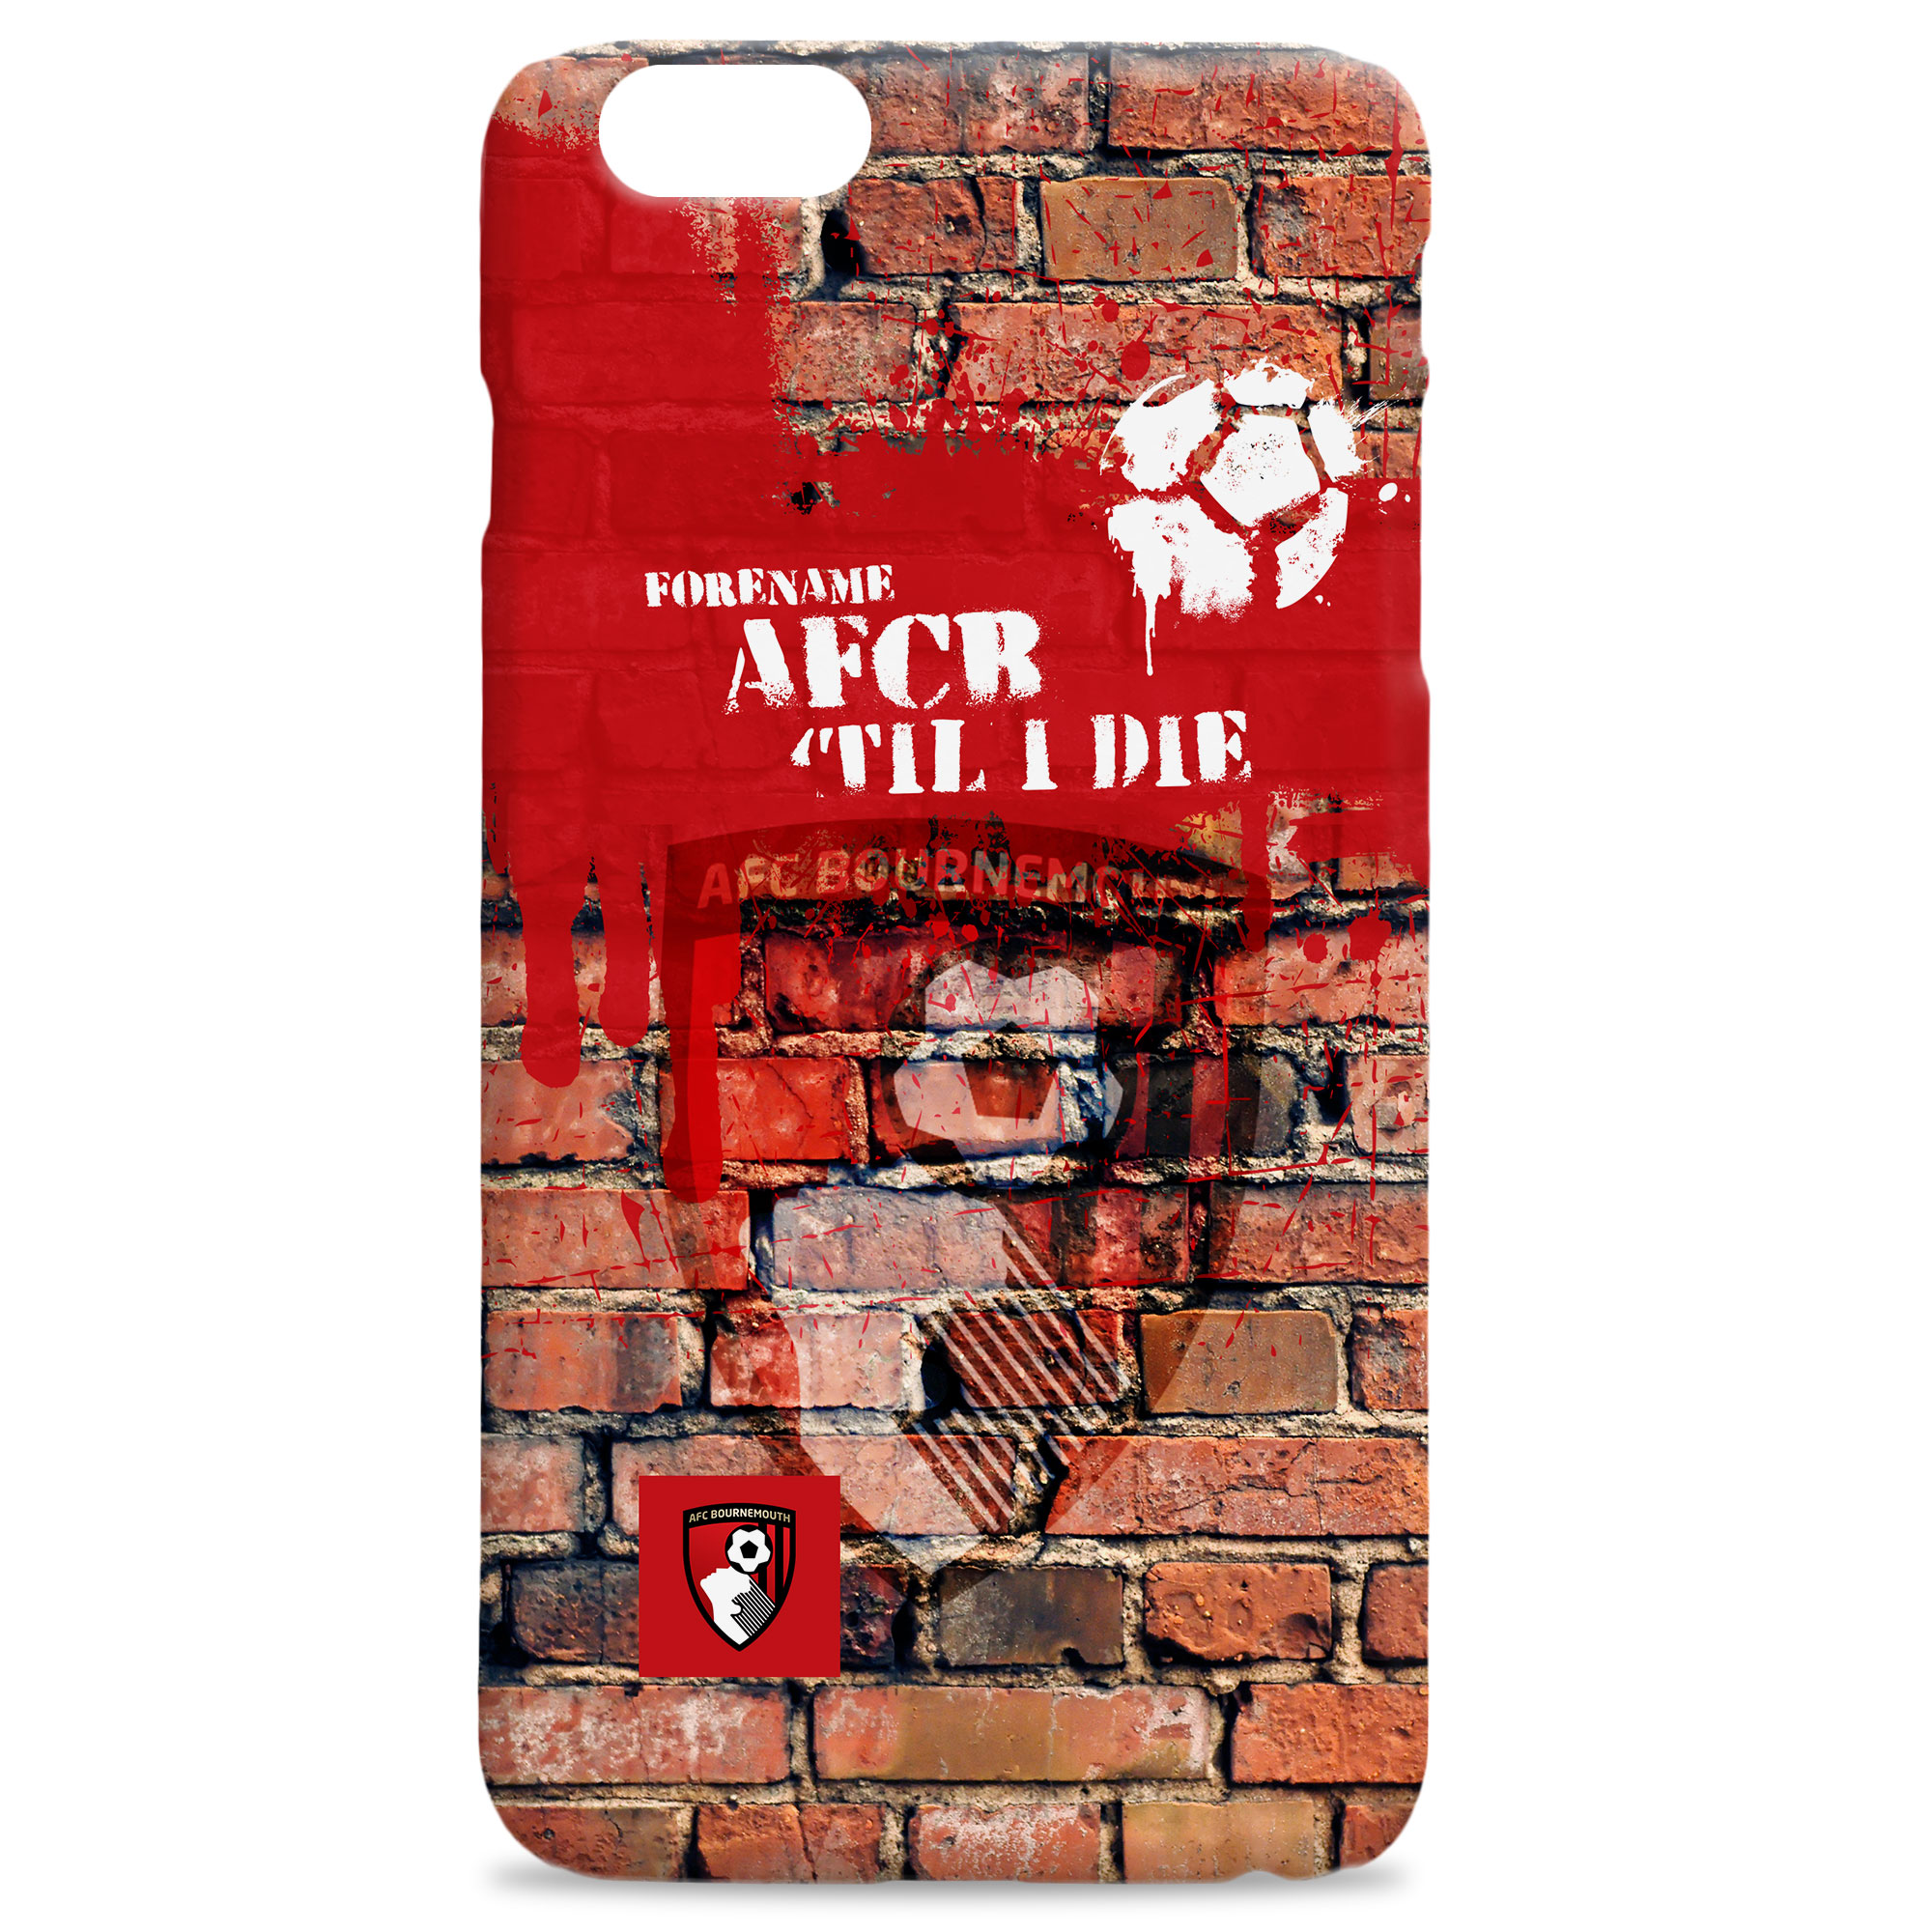 AFC Bournemouth 'Til I Die Hard Back Phone Case